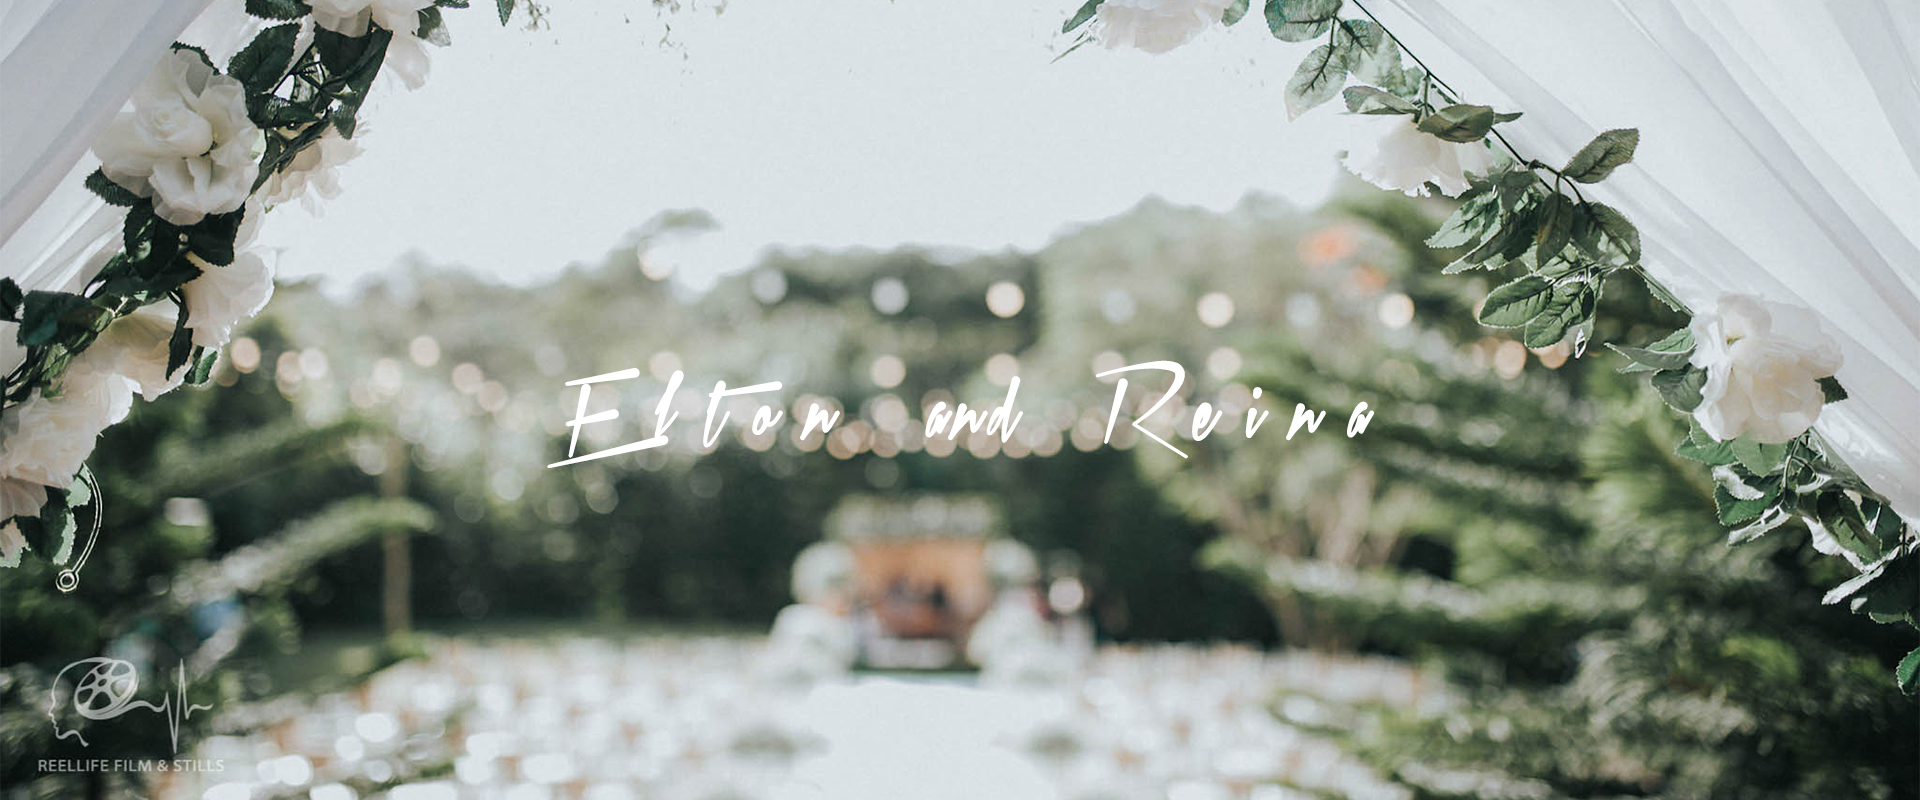 Elton + Reina | Tagaytay, Philippines | the farmhills garden